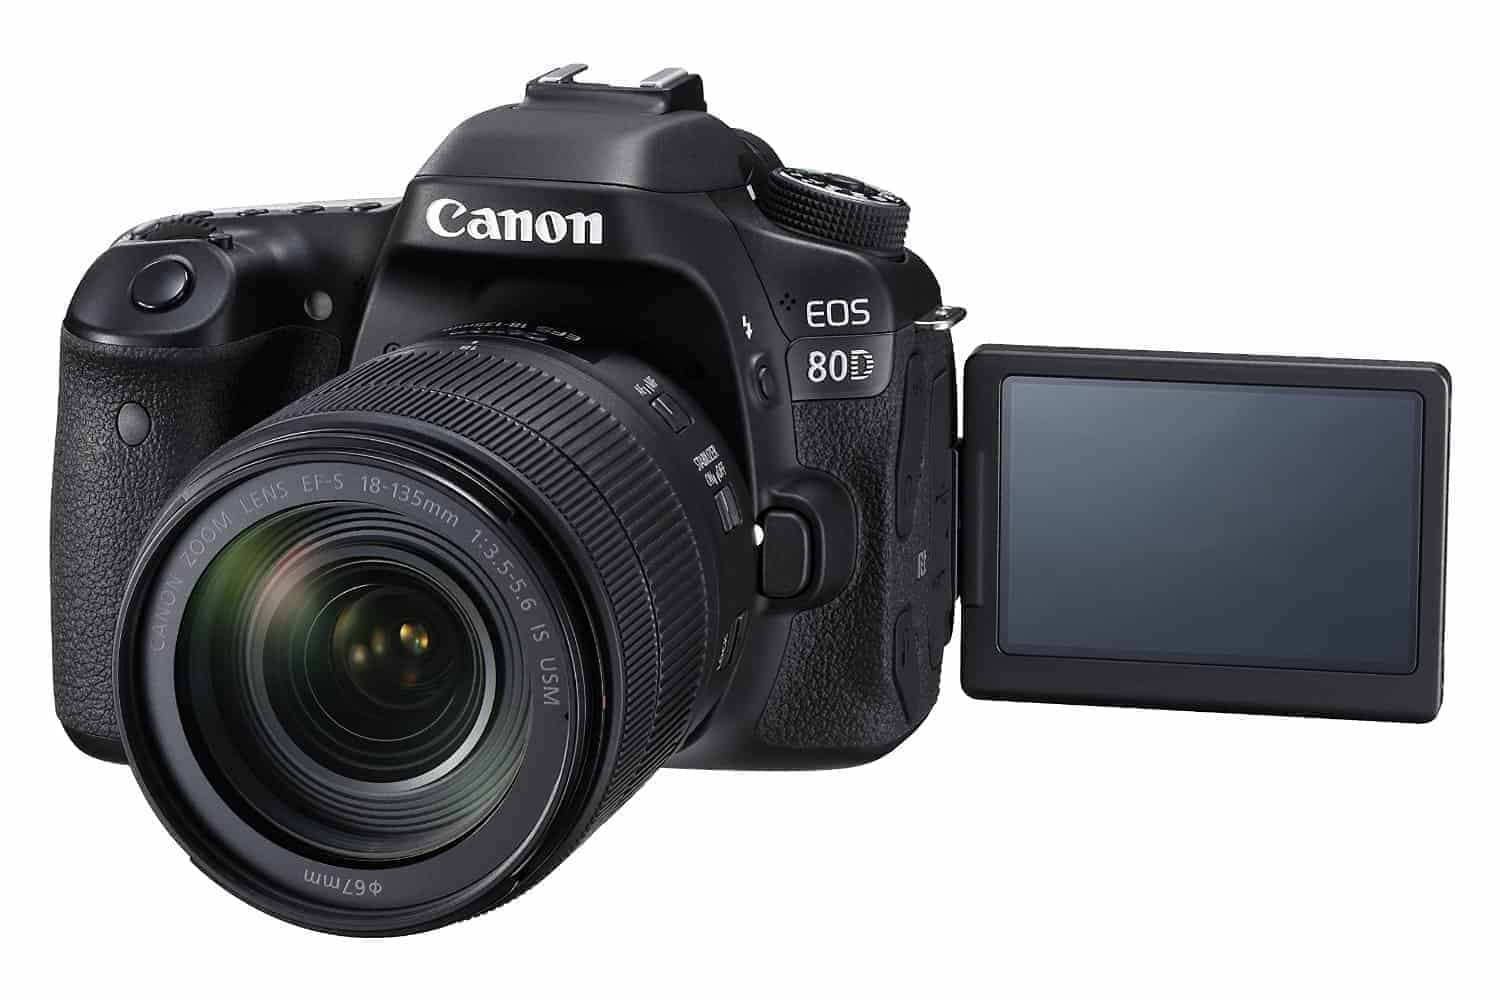 Canon eos 80d digital slr kit with ef s 18 135mm f 3 5